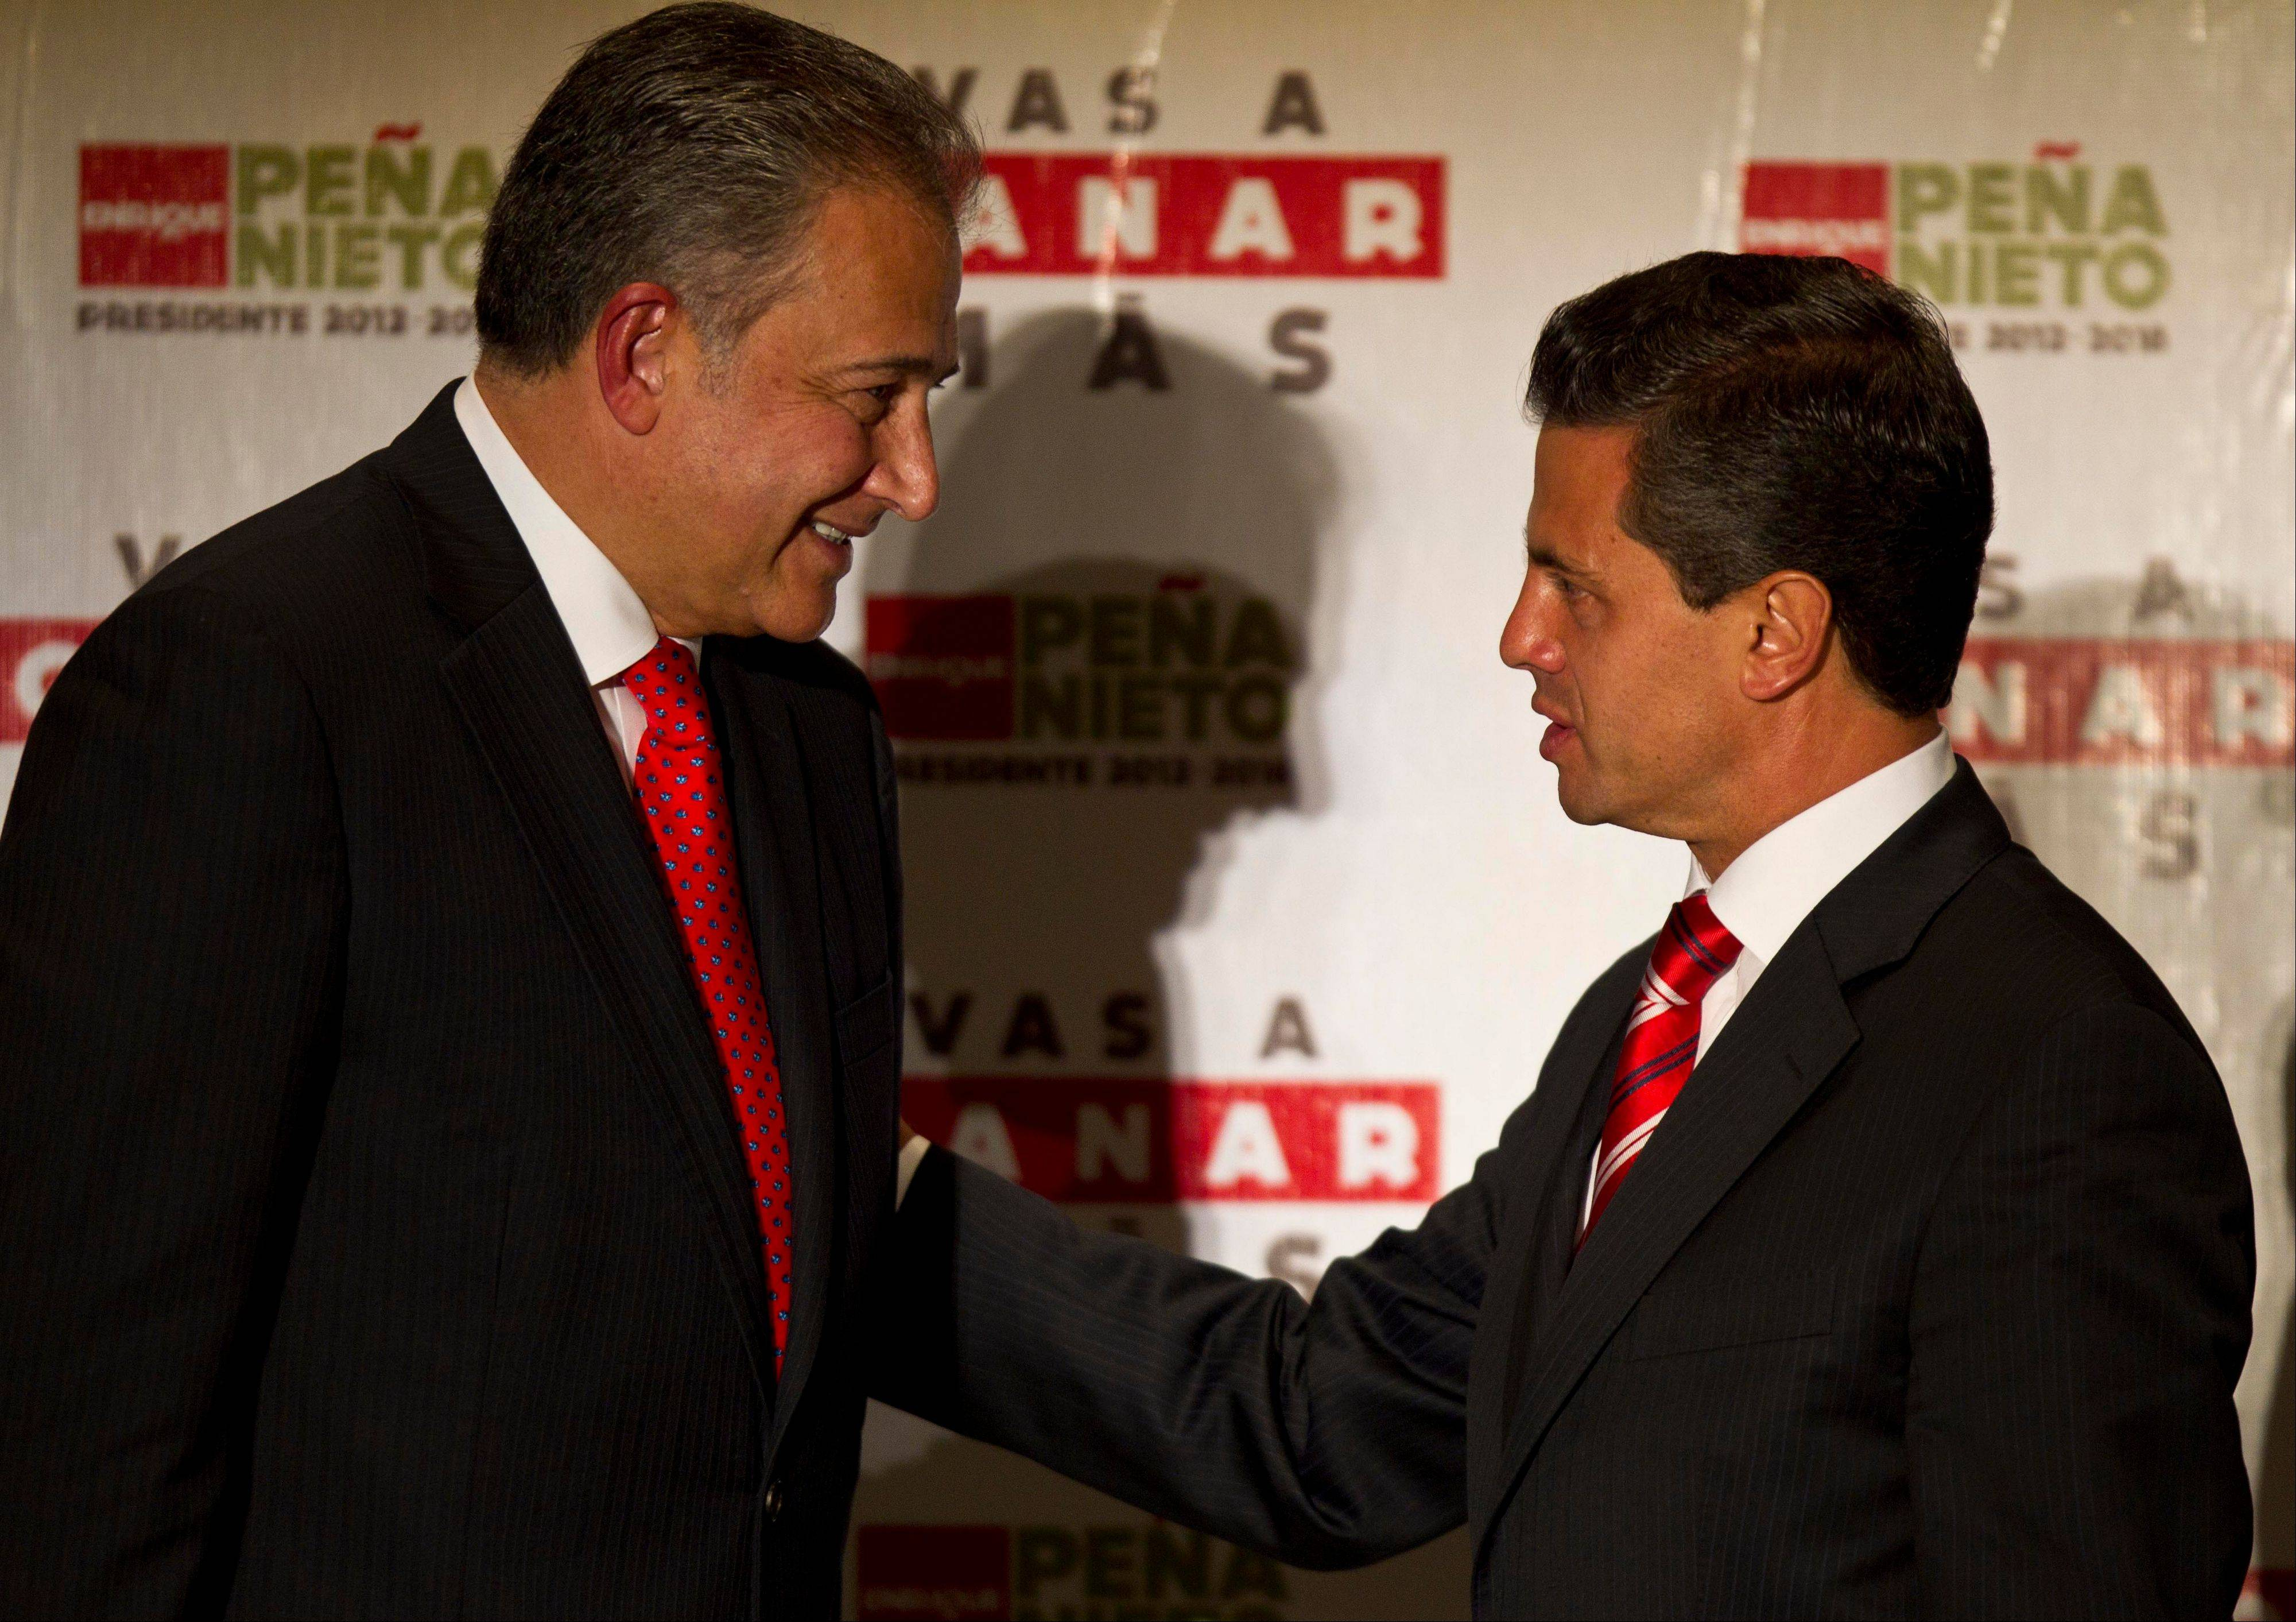 Associated Press/June 14, 2012 Then presidential candidate Enrique Pena Nieto, right, of the Institutional Revolutionary Party, greets retired Colombian Gen. Oscar Naranjo during a press conference in Mexico City.